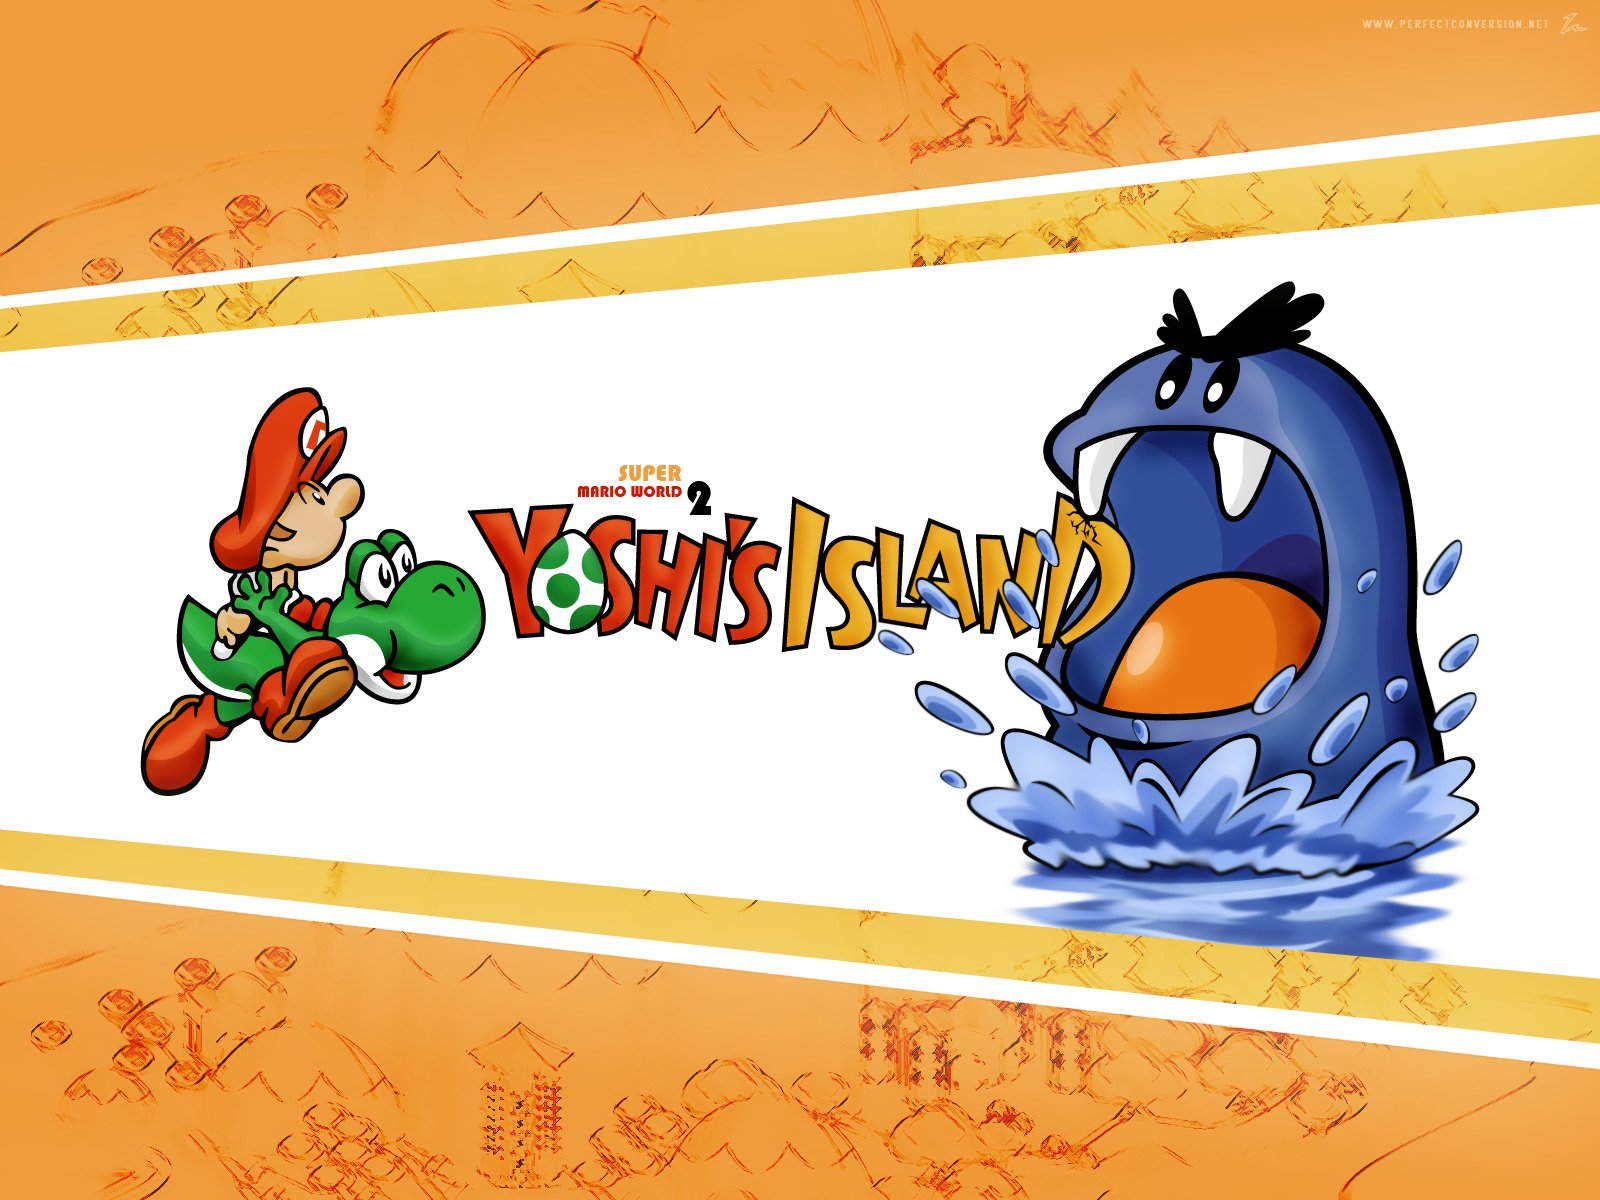 Video Game - Super Mario World 2: Yoshi's Island  Wallpaper